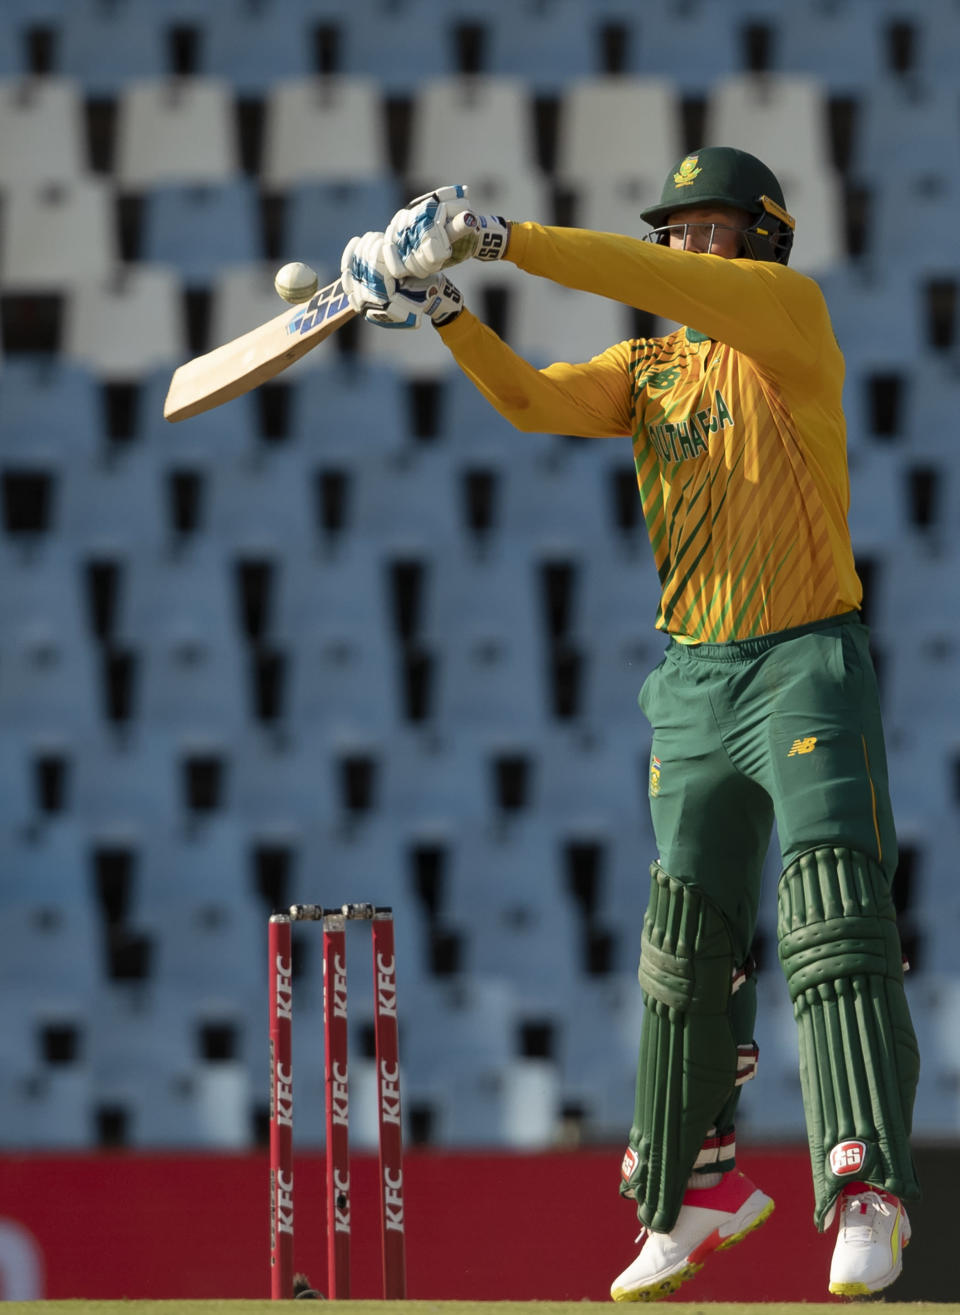 South Africa's batman Rassie van der Dussen plays a high ball during the fourth and final T20 cricket match between South Africa and Pakistan at Centurion Park in Pretoria, South Africa, Friday, April 16, 2021. (AP Photo/Themba Hadebe)